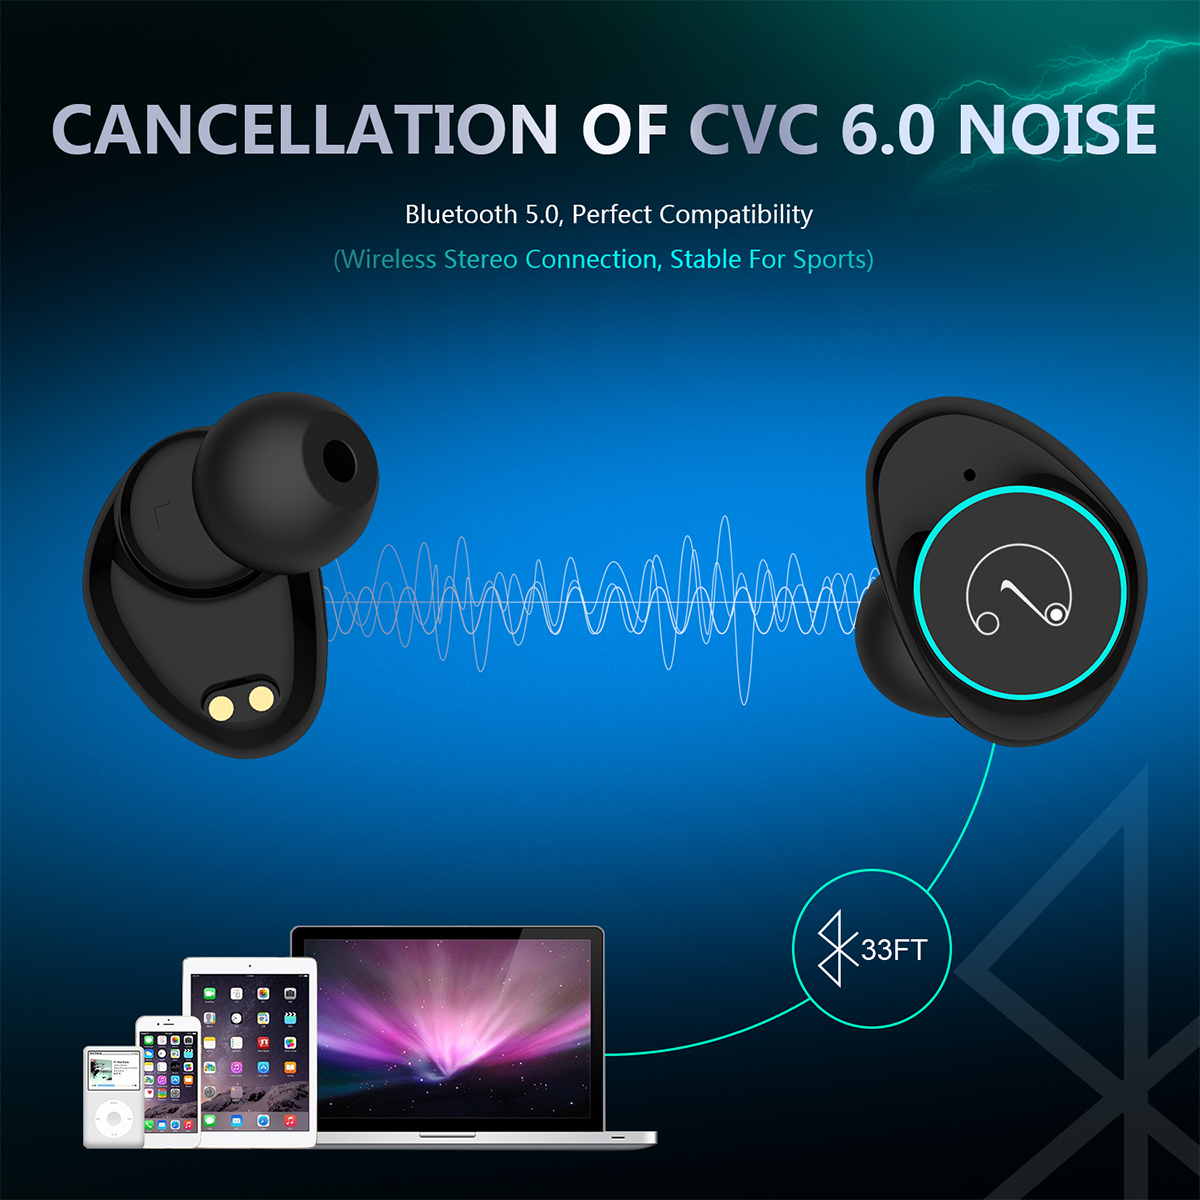 [bluetooth 5.0] TWS True Wireless Earphone CVC6.0 Noise Cancelling Waterproof Headphone with Mic